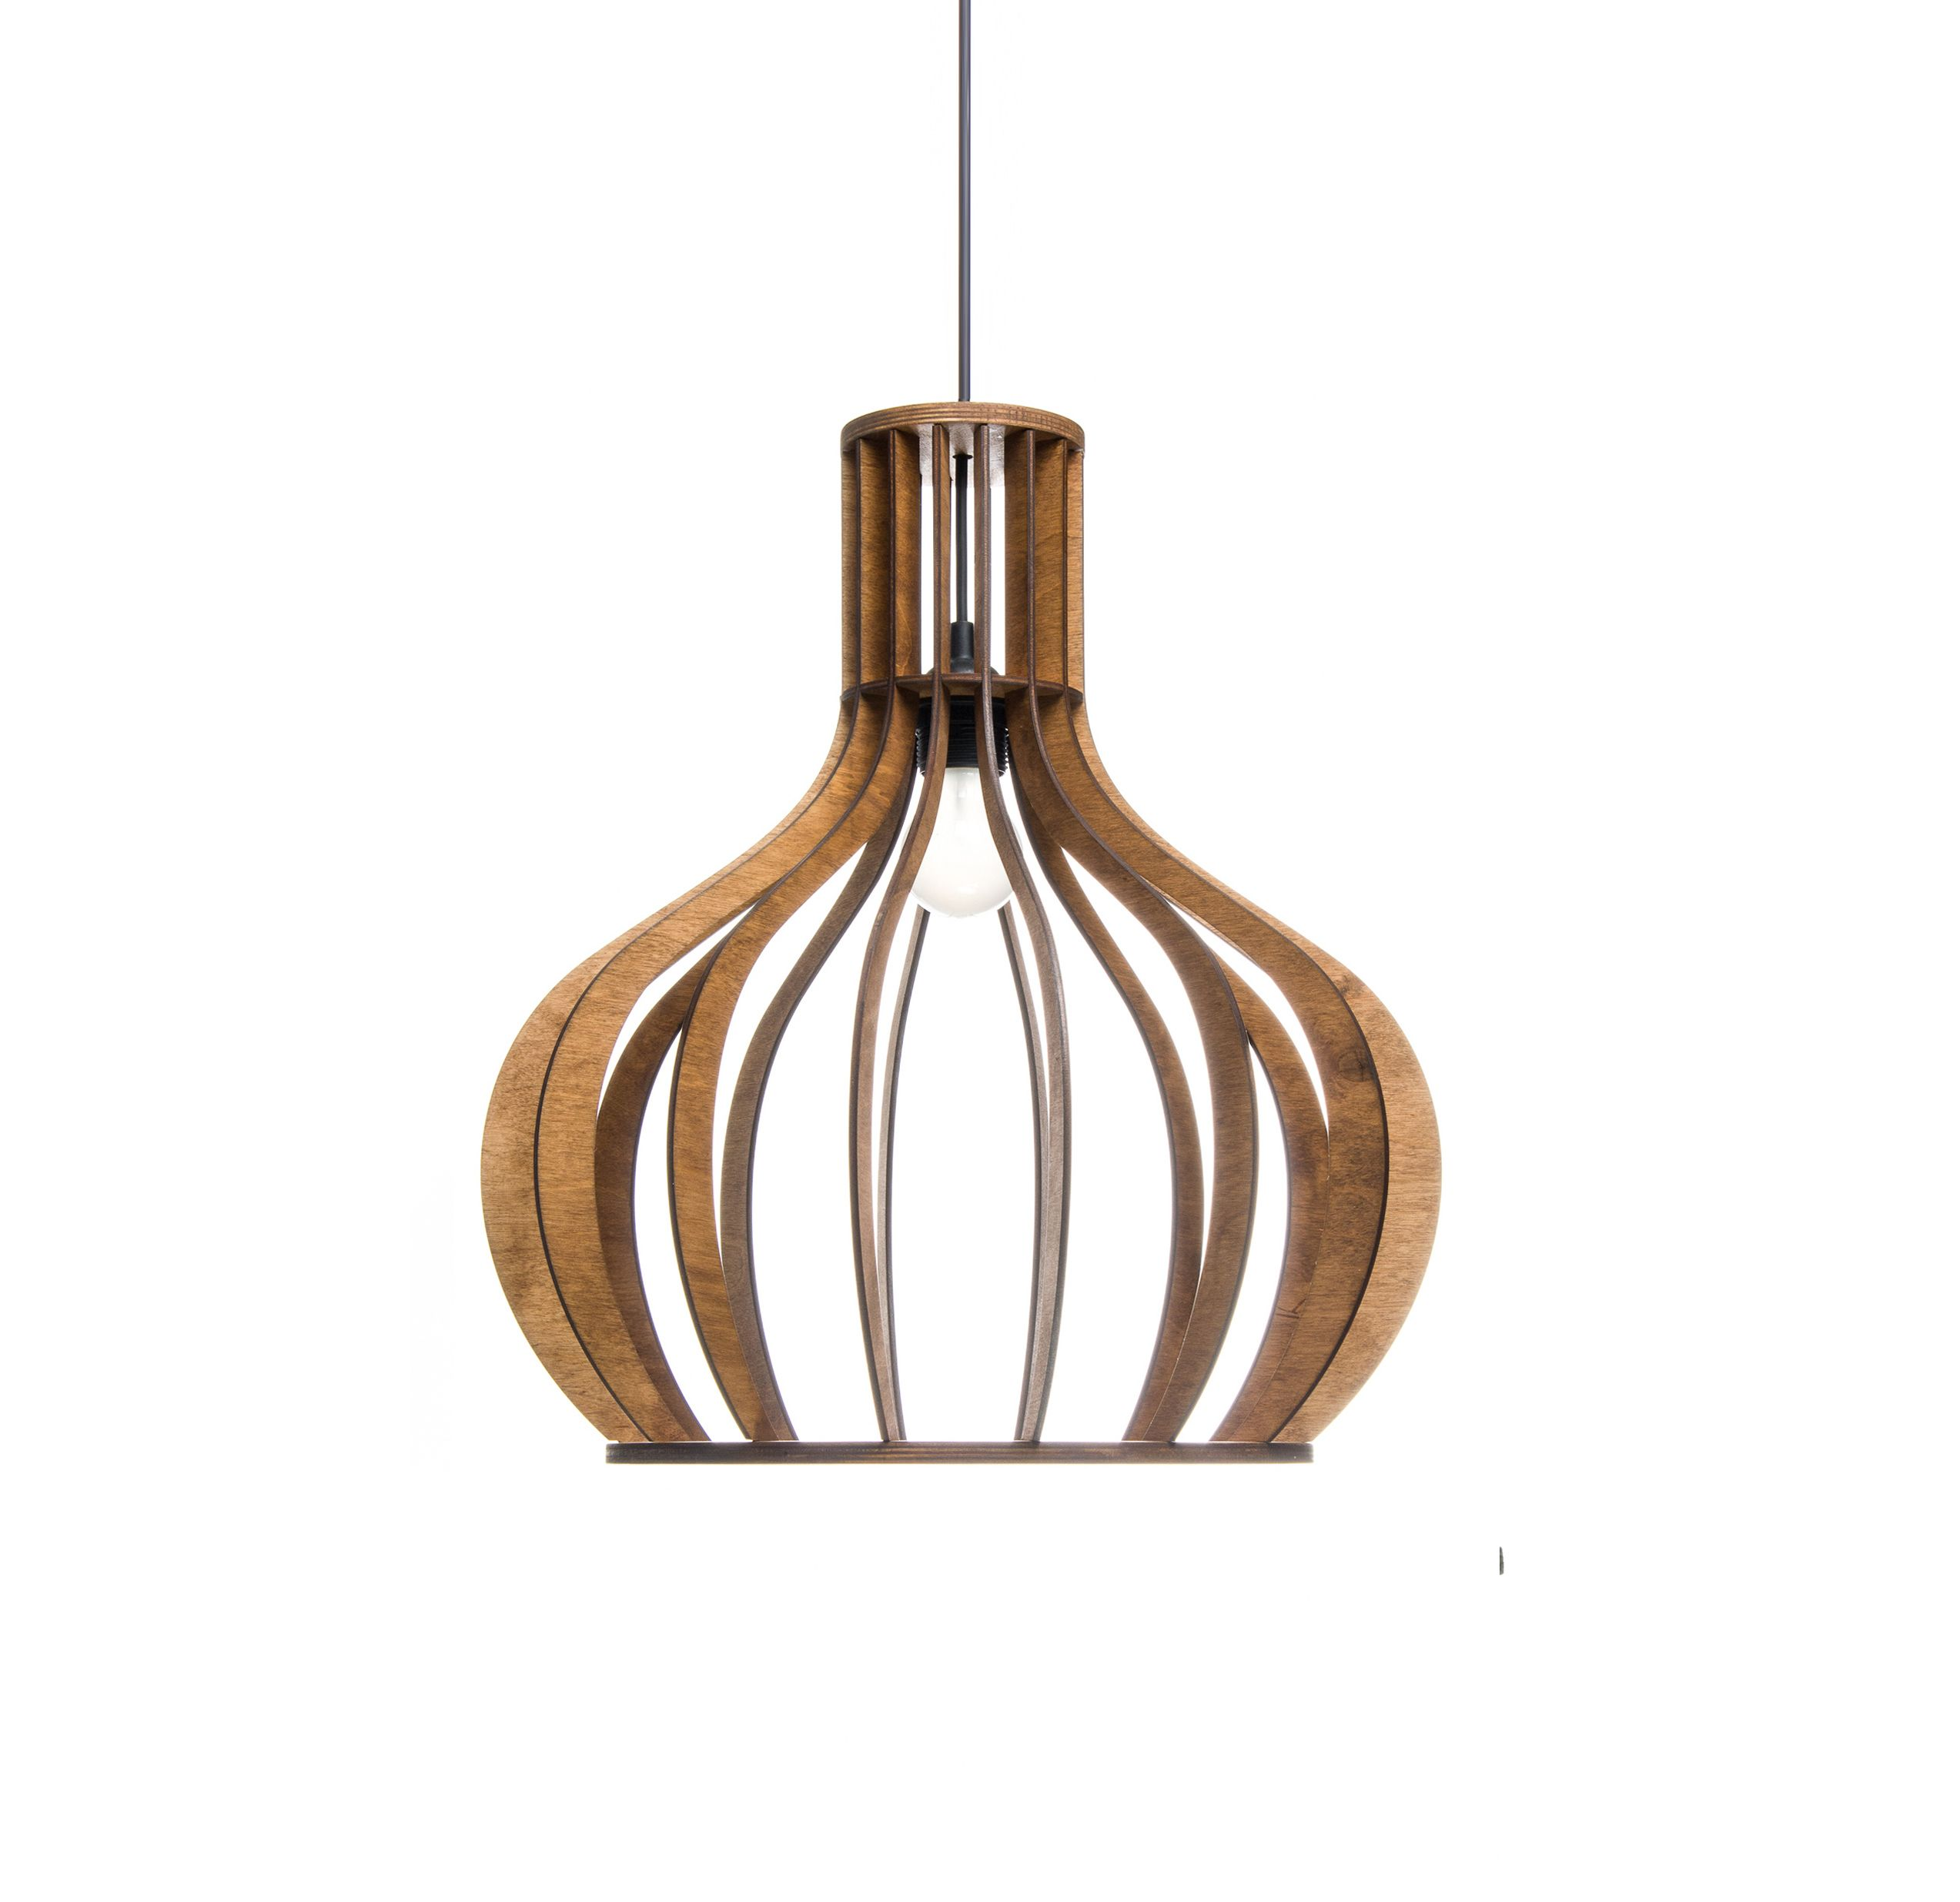 Wood Lamp Pendant Light Dining Room Lighting Kitchen Island Light Fixture  Wooden Lampshade Bubble Chandelier Round Lamp ALREADY ASSEMBLED